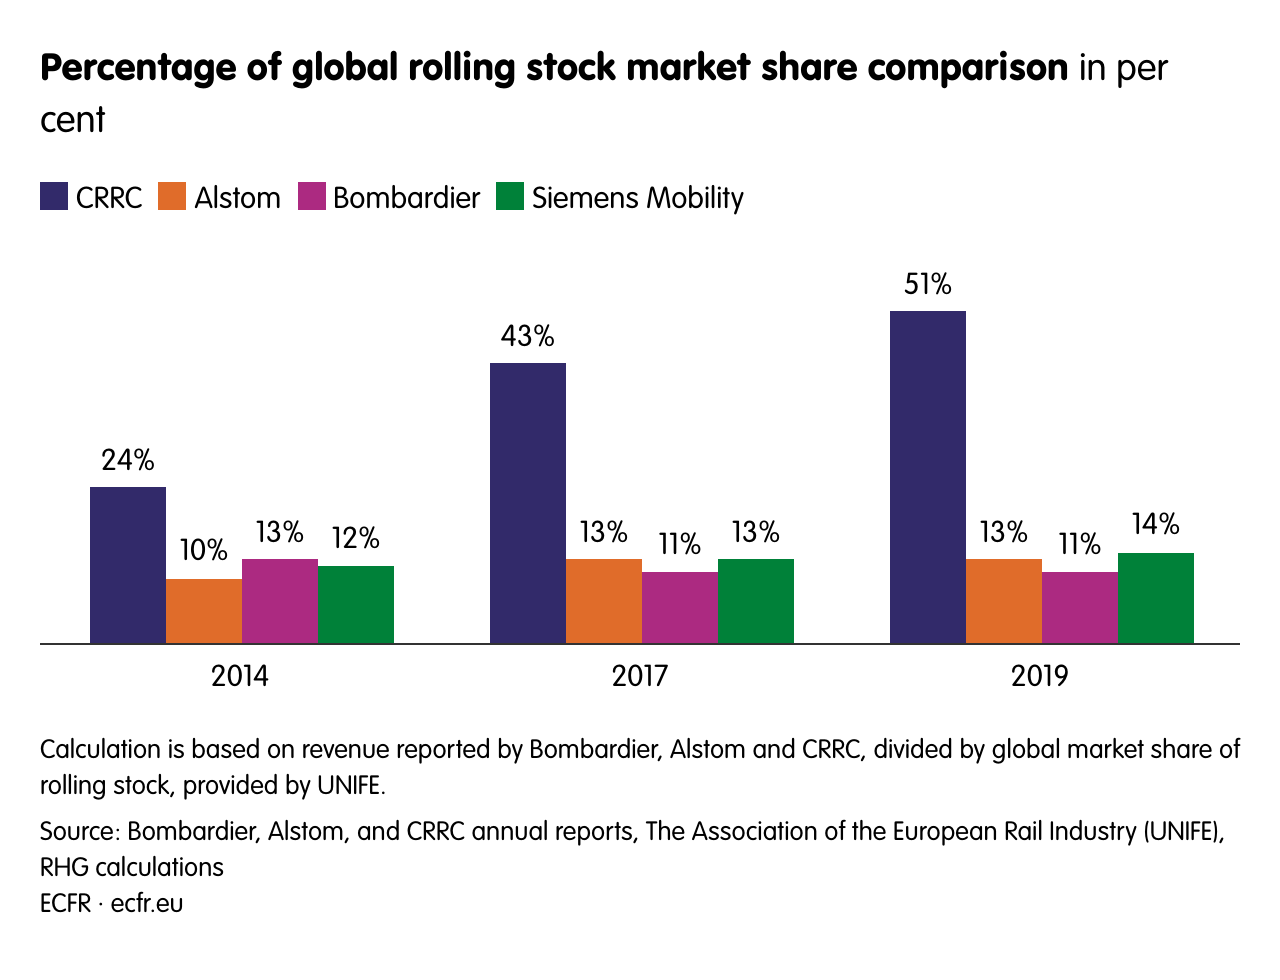 Percentage of global rolling stock market share comparison